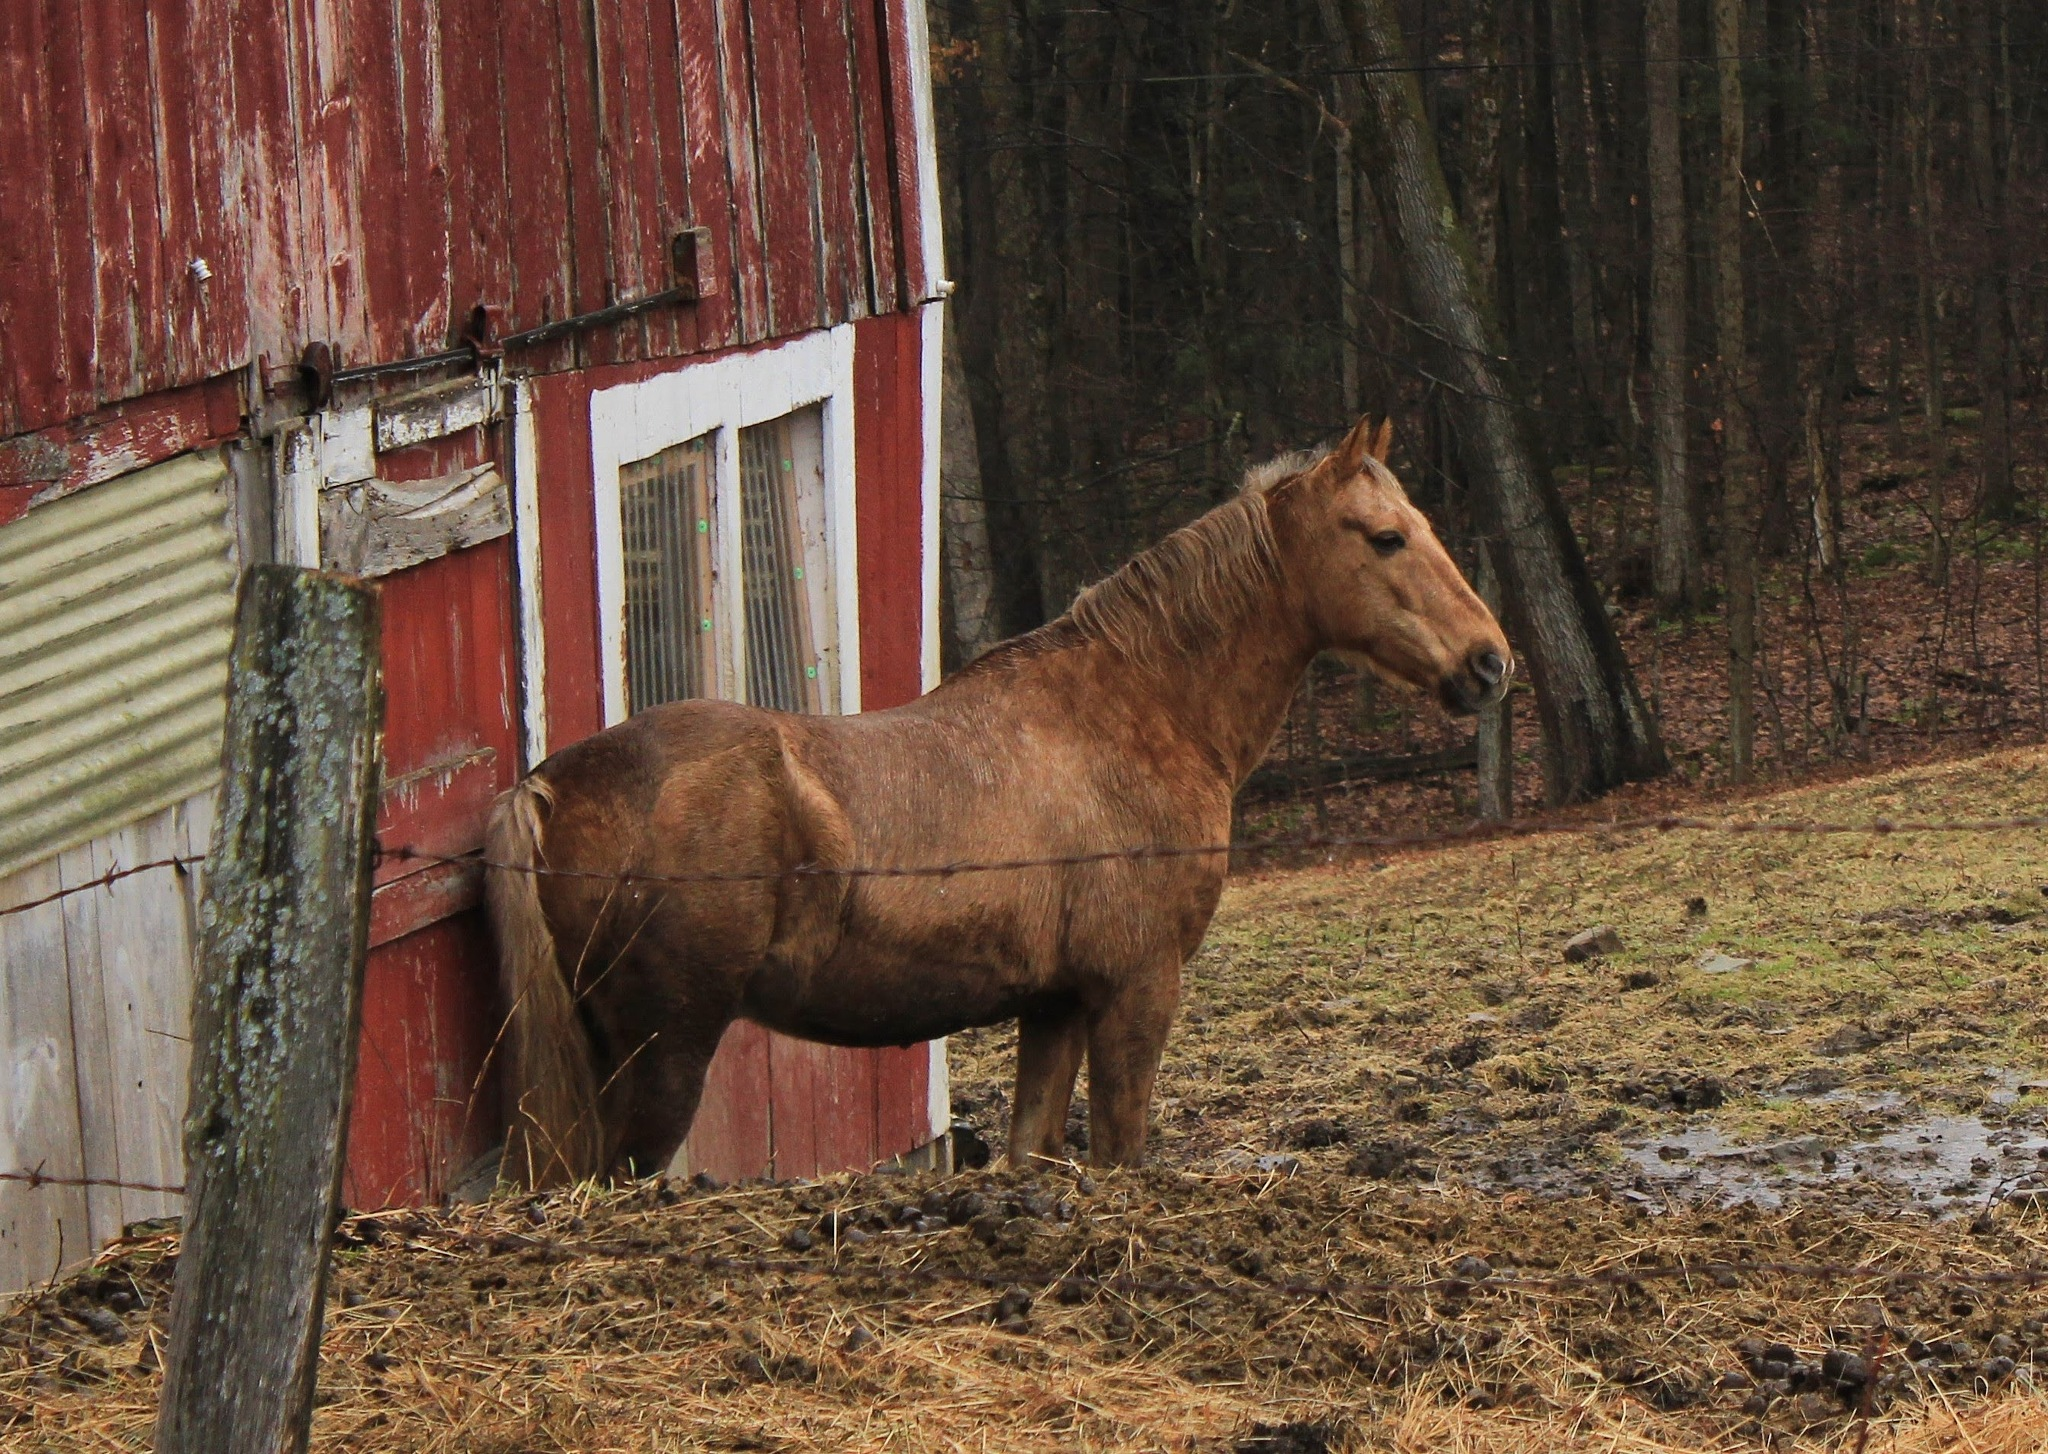 Horse at the Red Barn by Auggie23